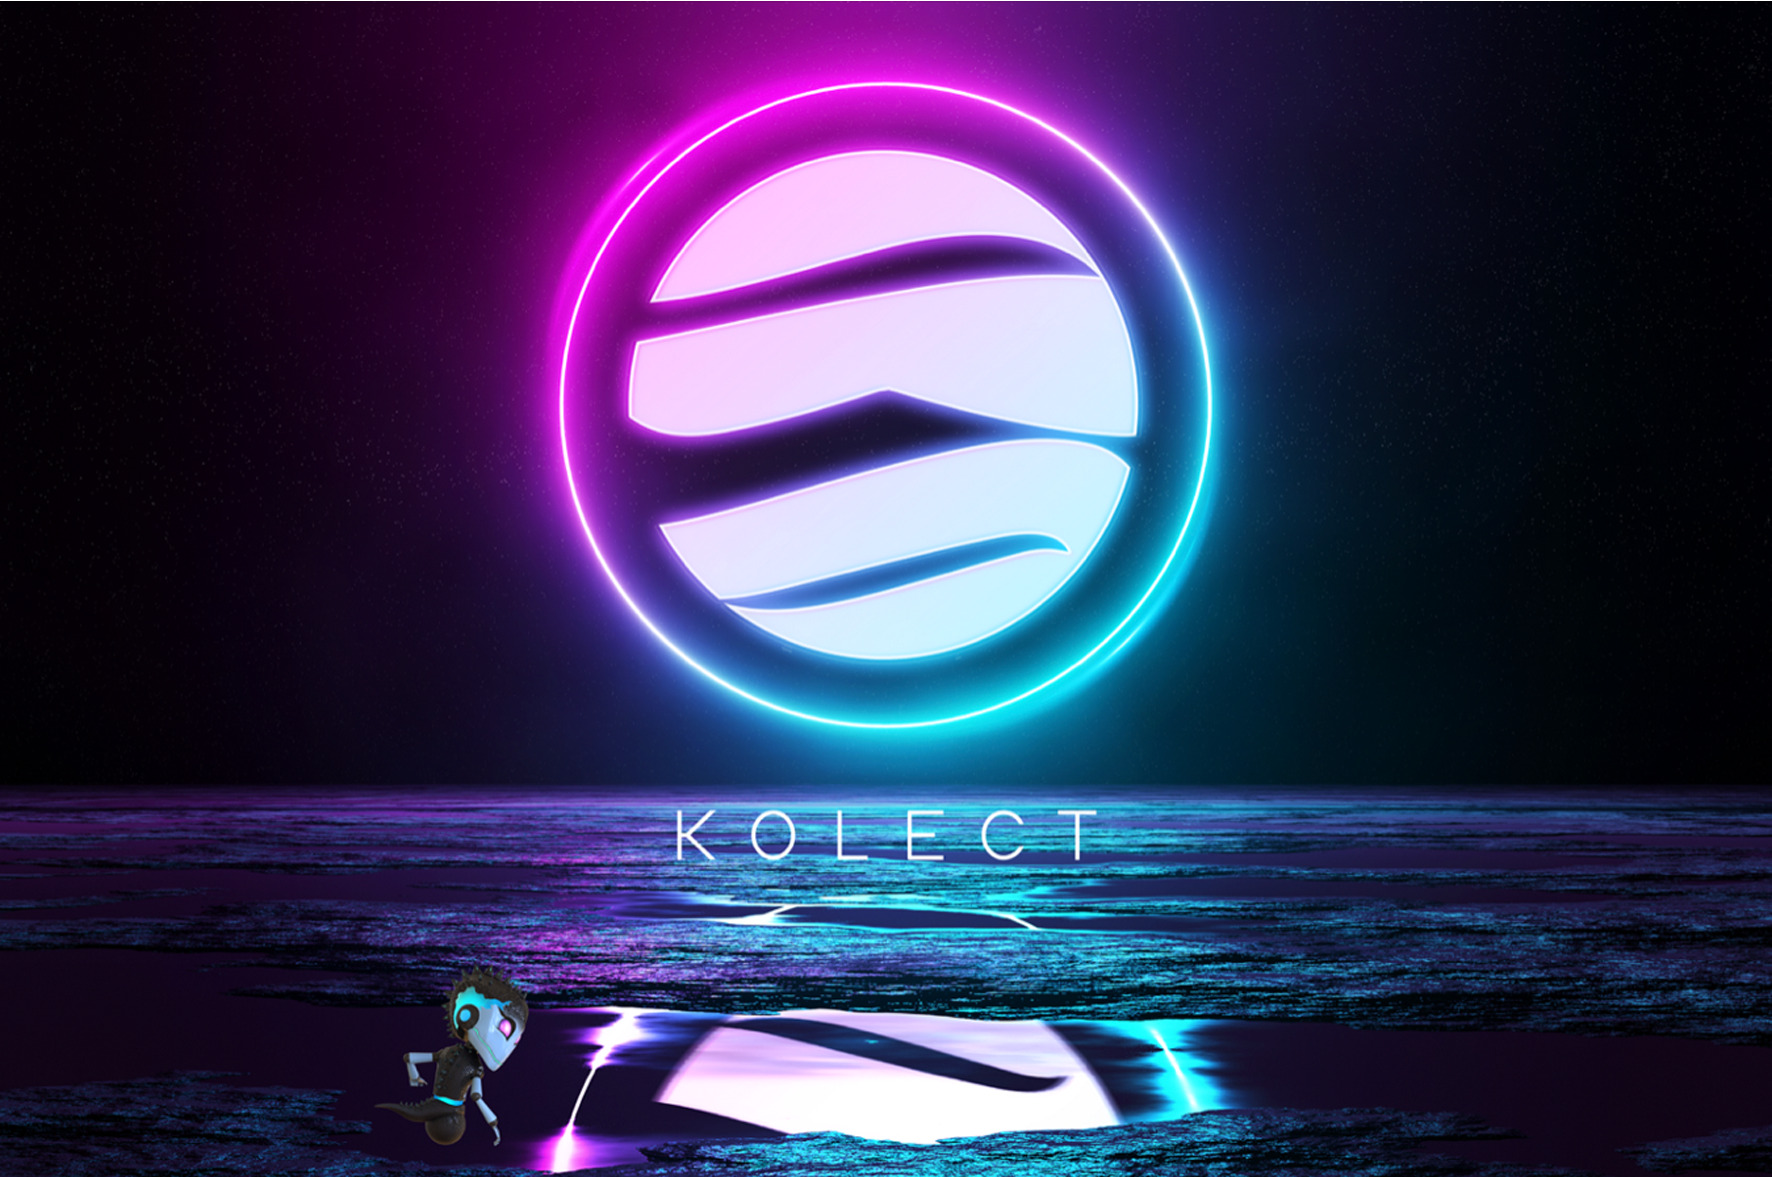 A pink-and-blue neon logo of the Terra Virtua Kolect (TVK) coin. The colours are reflected into the water below it, where a vFlect figure is posing.